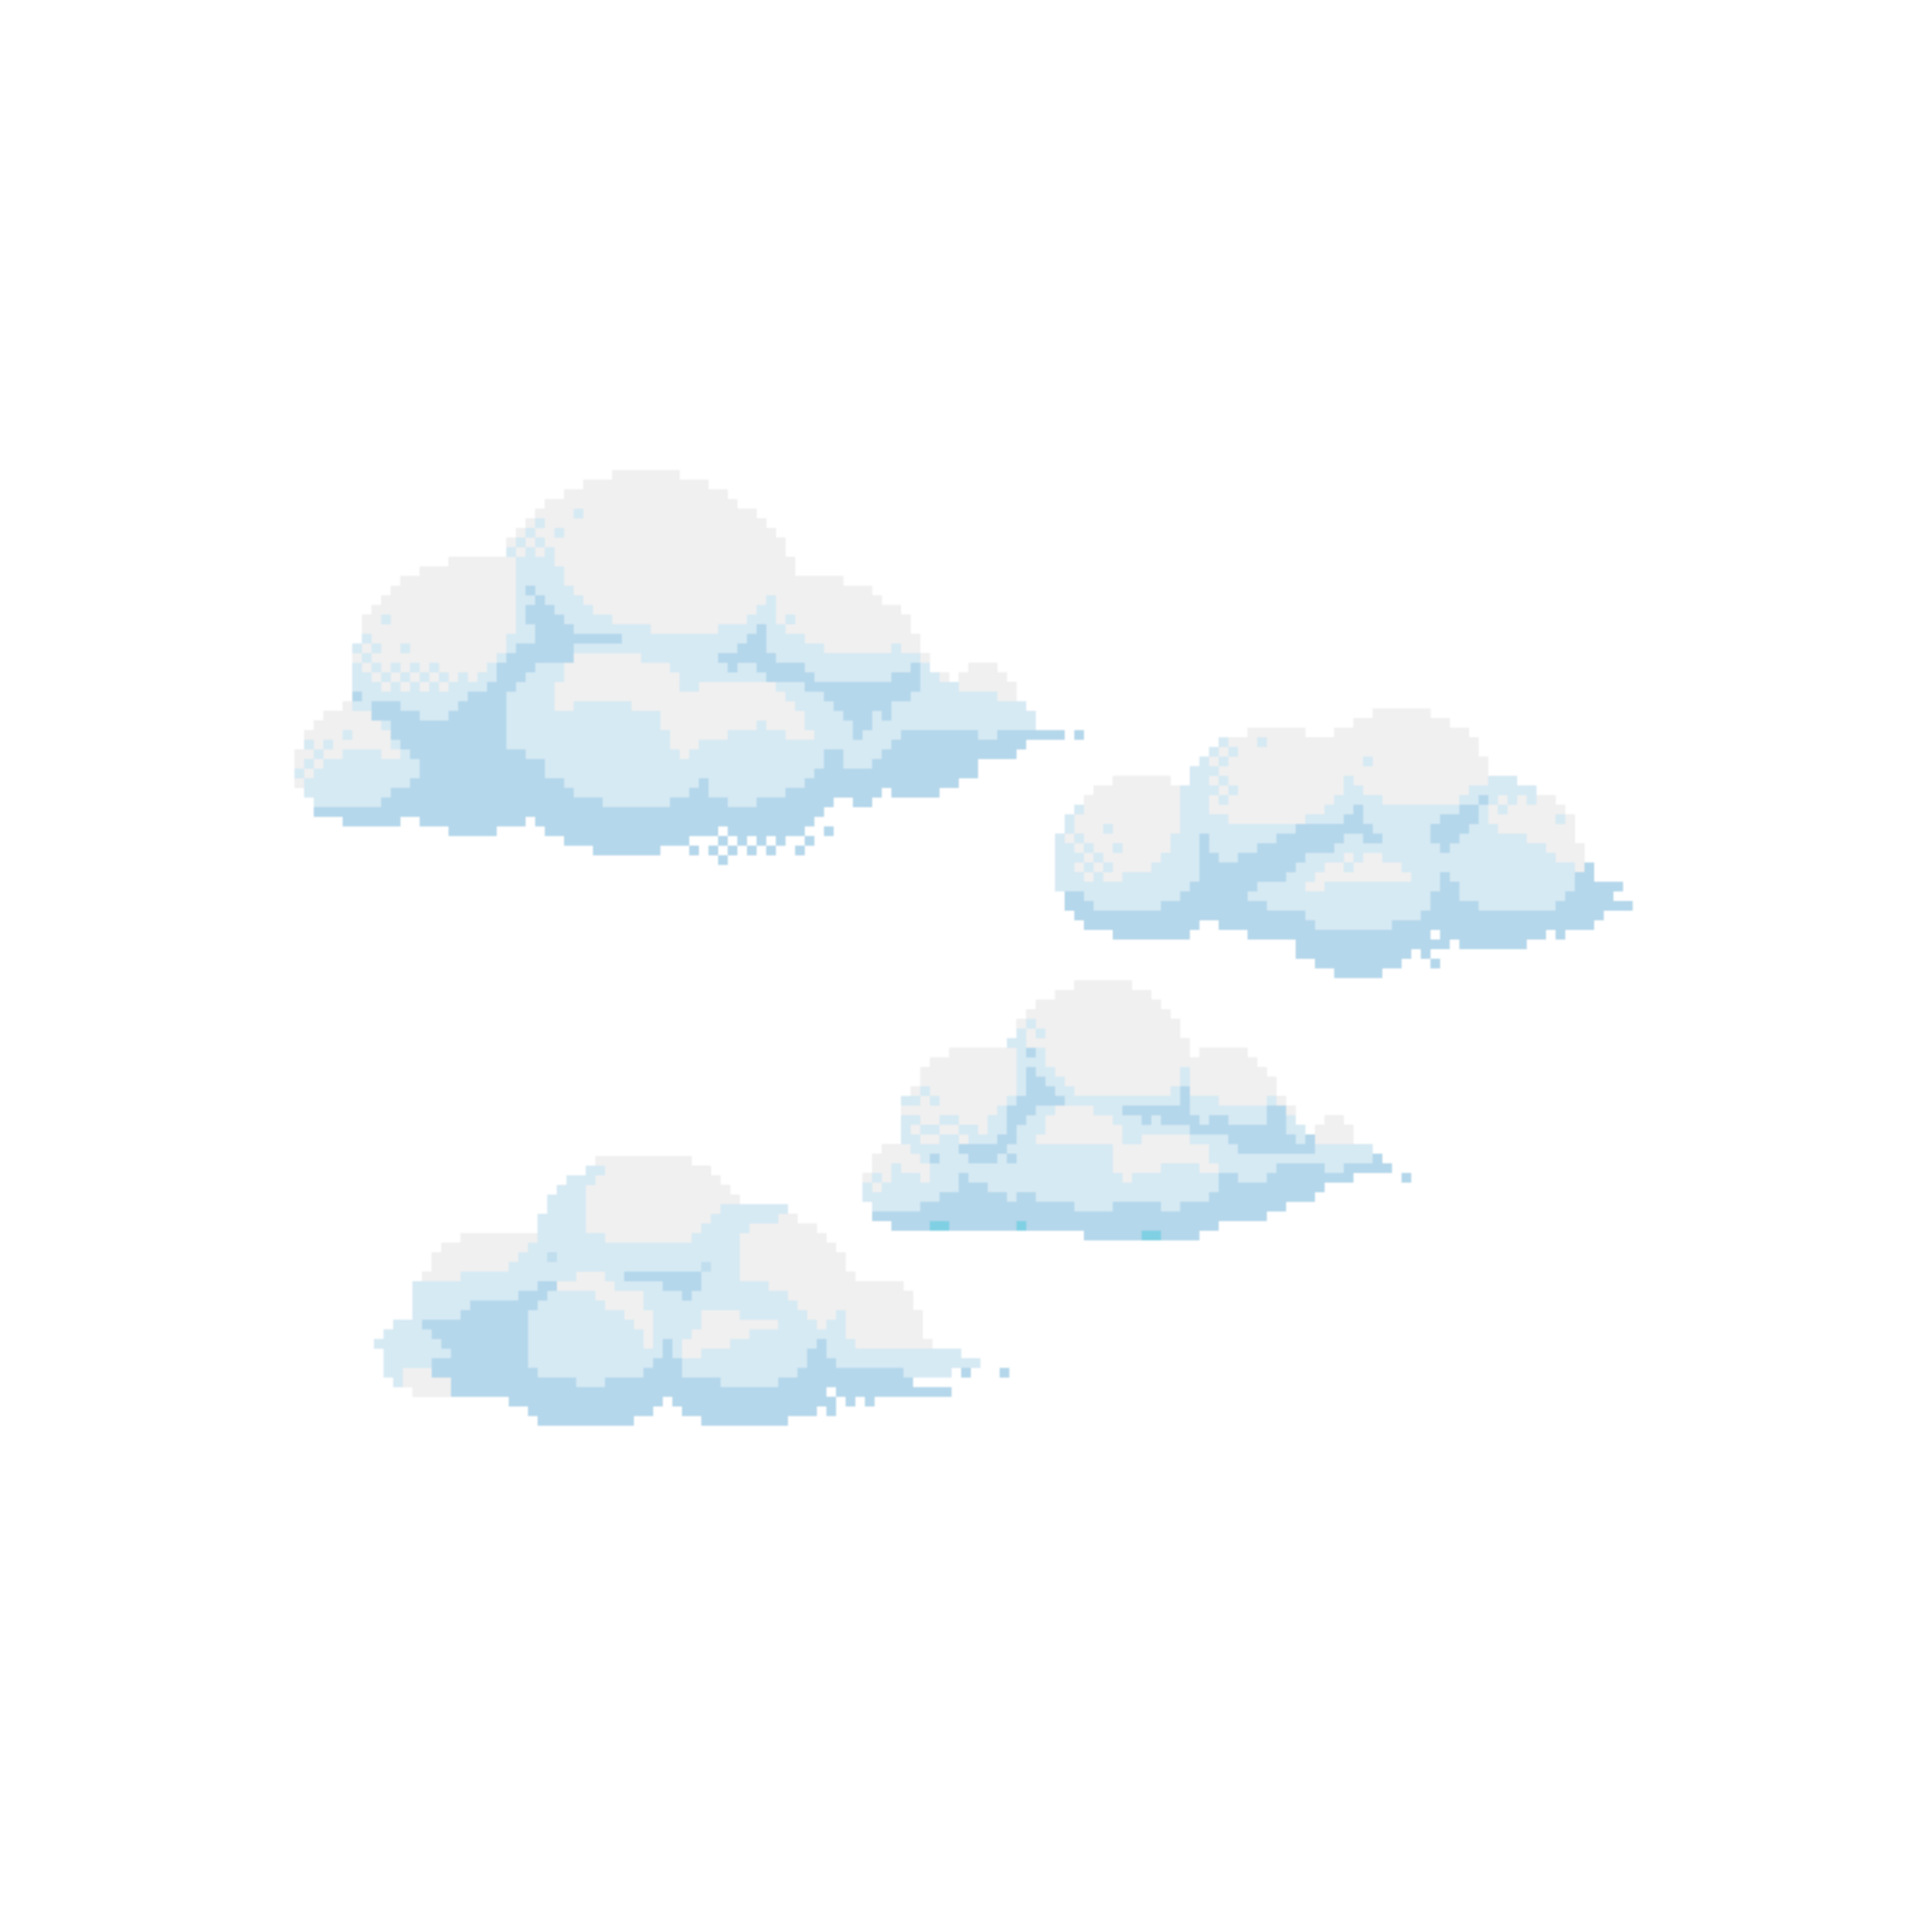 Freetoedit Cloud Clouds Pixelated Kawaii Aesthetic Cute White Aesthetics Tumblr Aesthetictumblr Overlays Transparent Overlays Picsart Overlays Tumblr